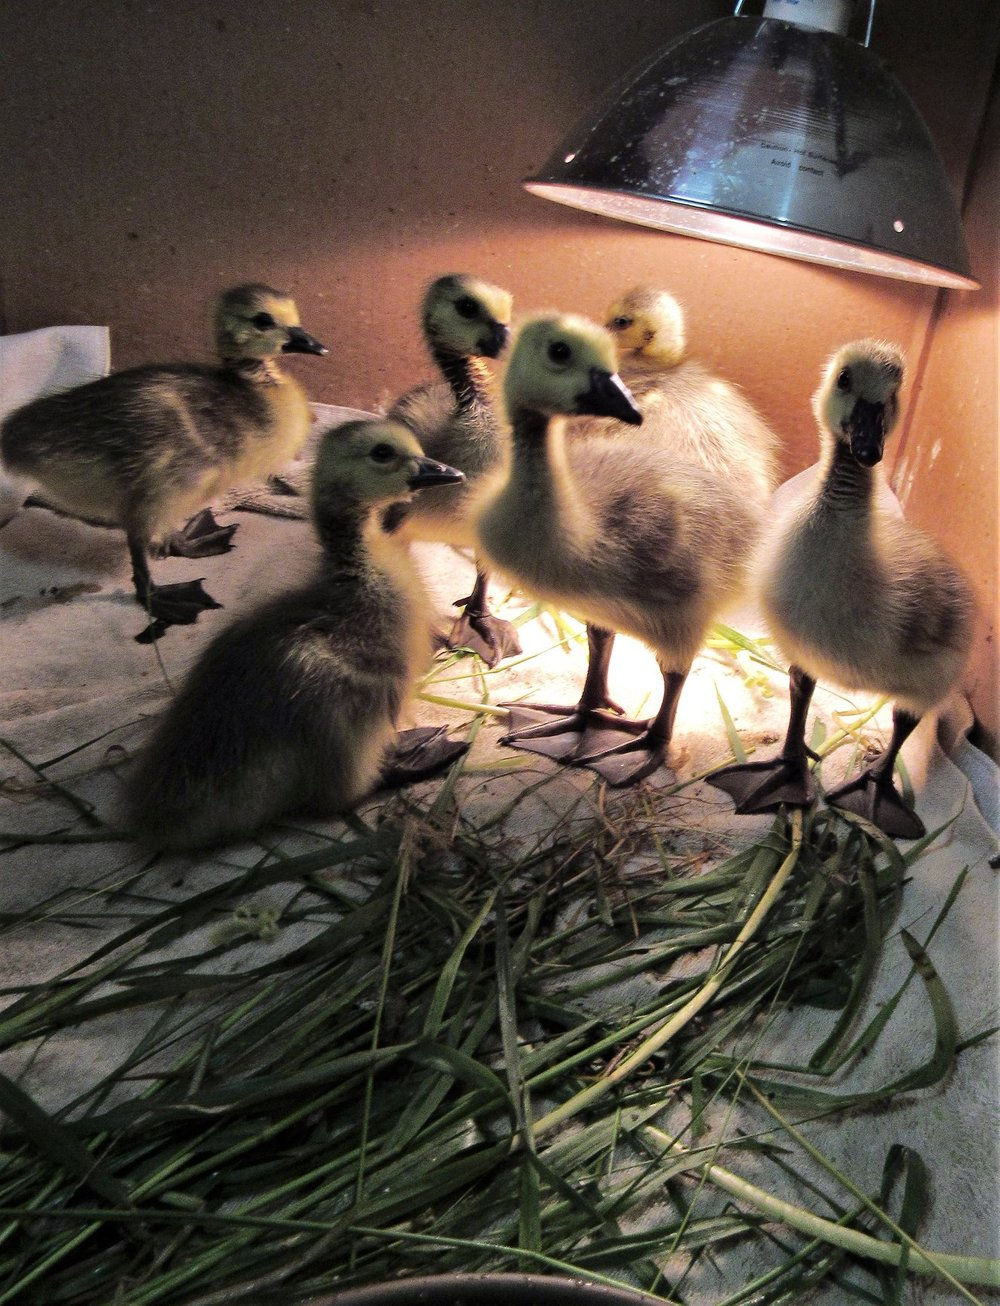 Part of the crew of Canada goslings. Each arrived individually from a separate accident. Now they are famly with their foster mom and dad.